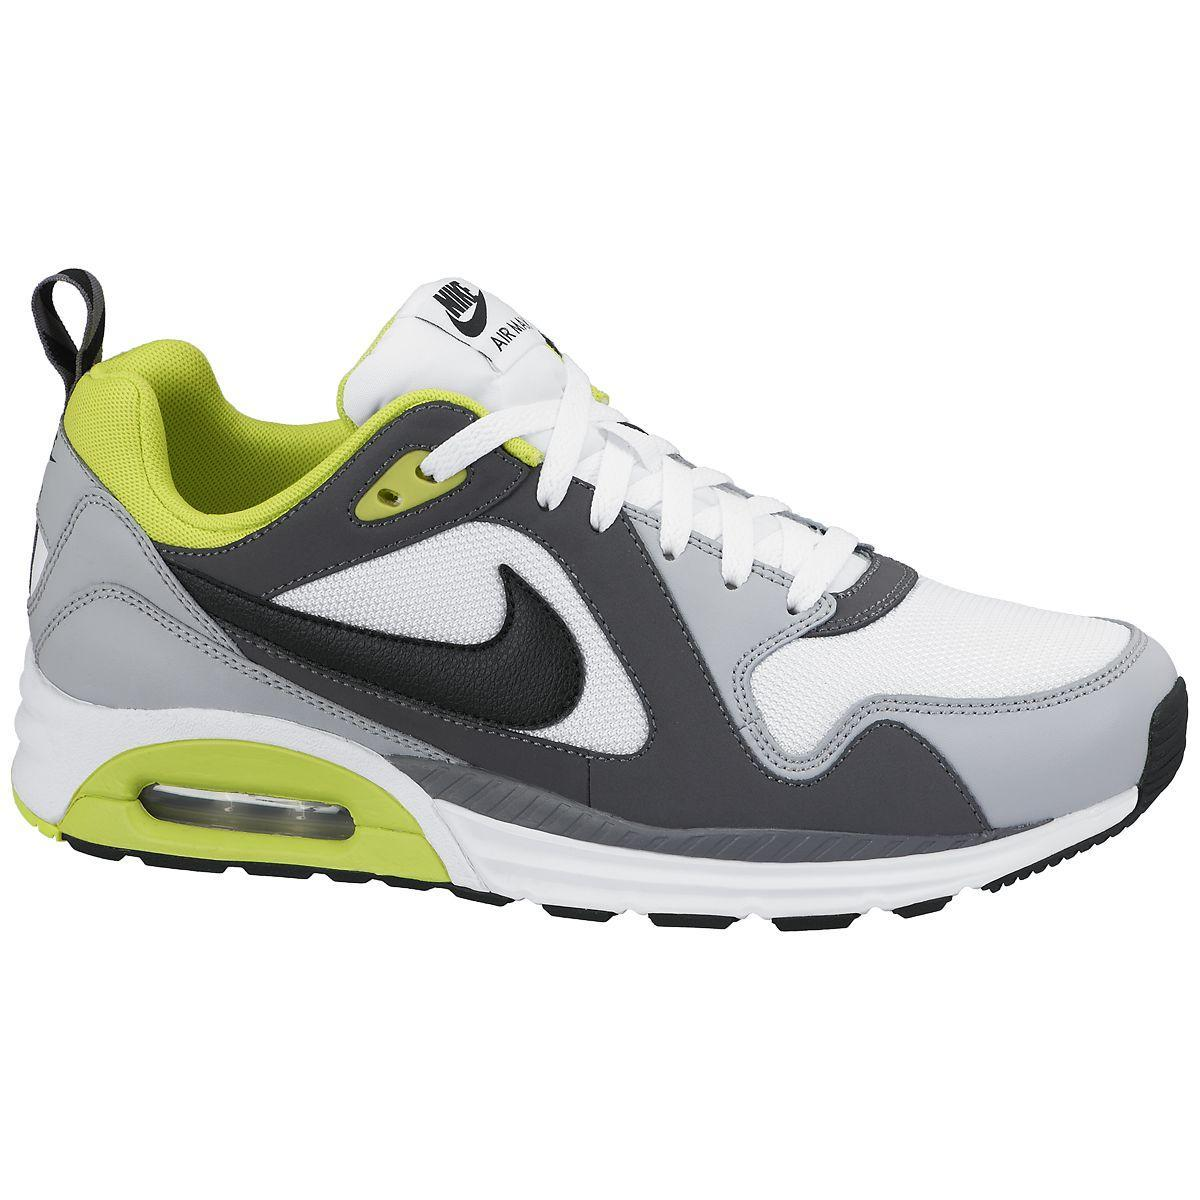 6cf3d1ce2aa6f Nike Mens Air Max Trax Running Shoes - White/Volt/Wolf Grey